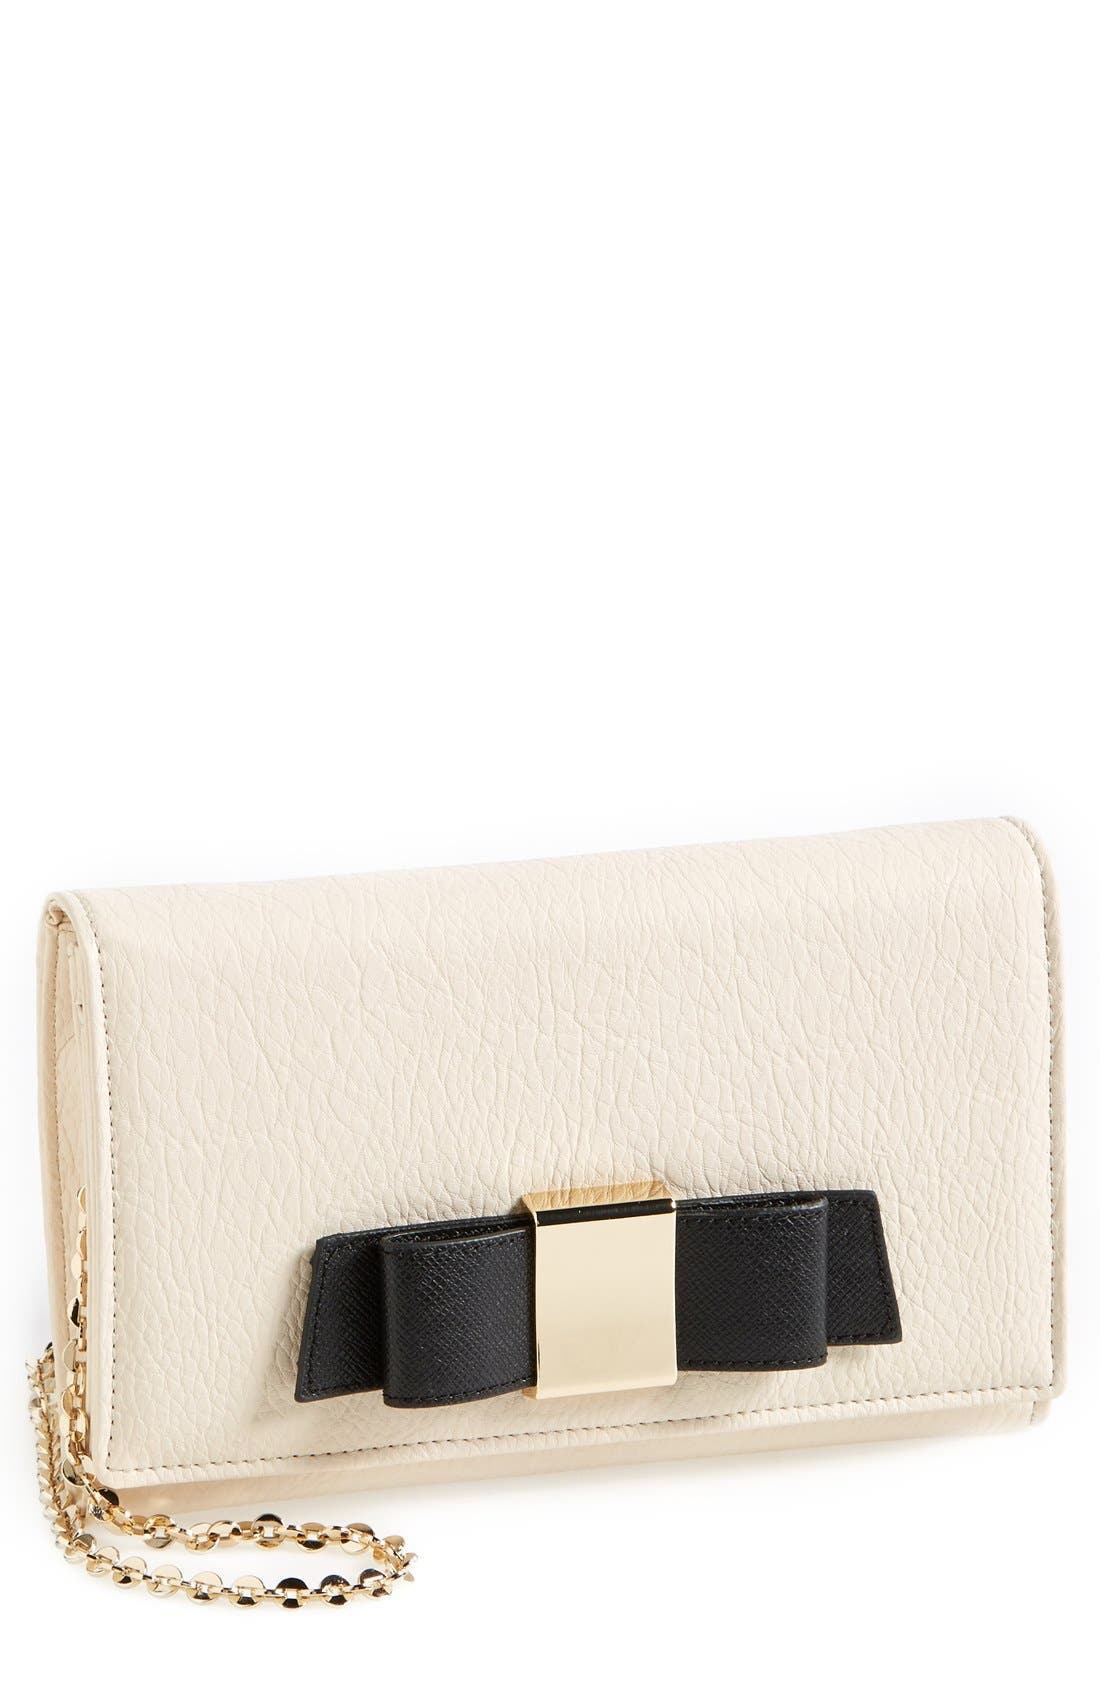 Alternate Image 1 Selected - Ivanka Trump 'Blair' Faux Leather Bow Clutch